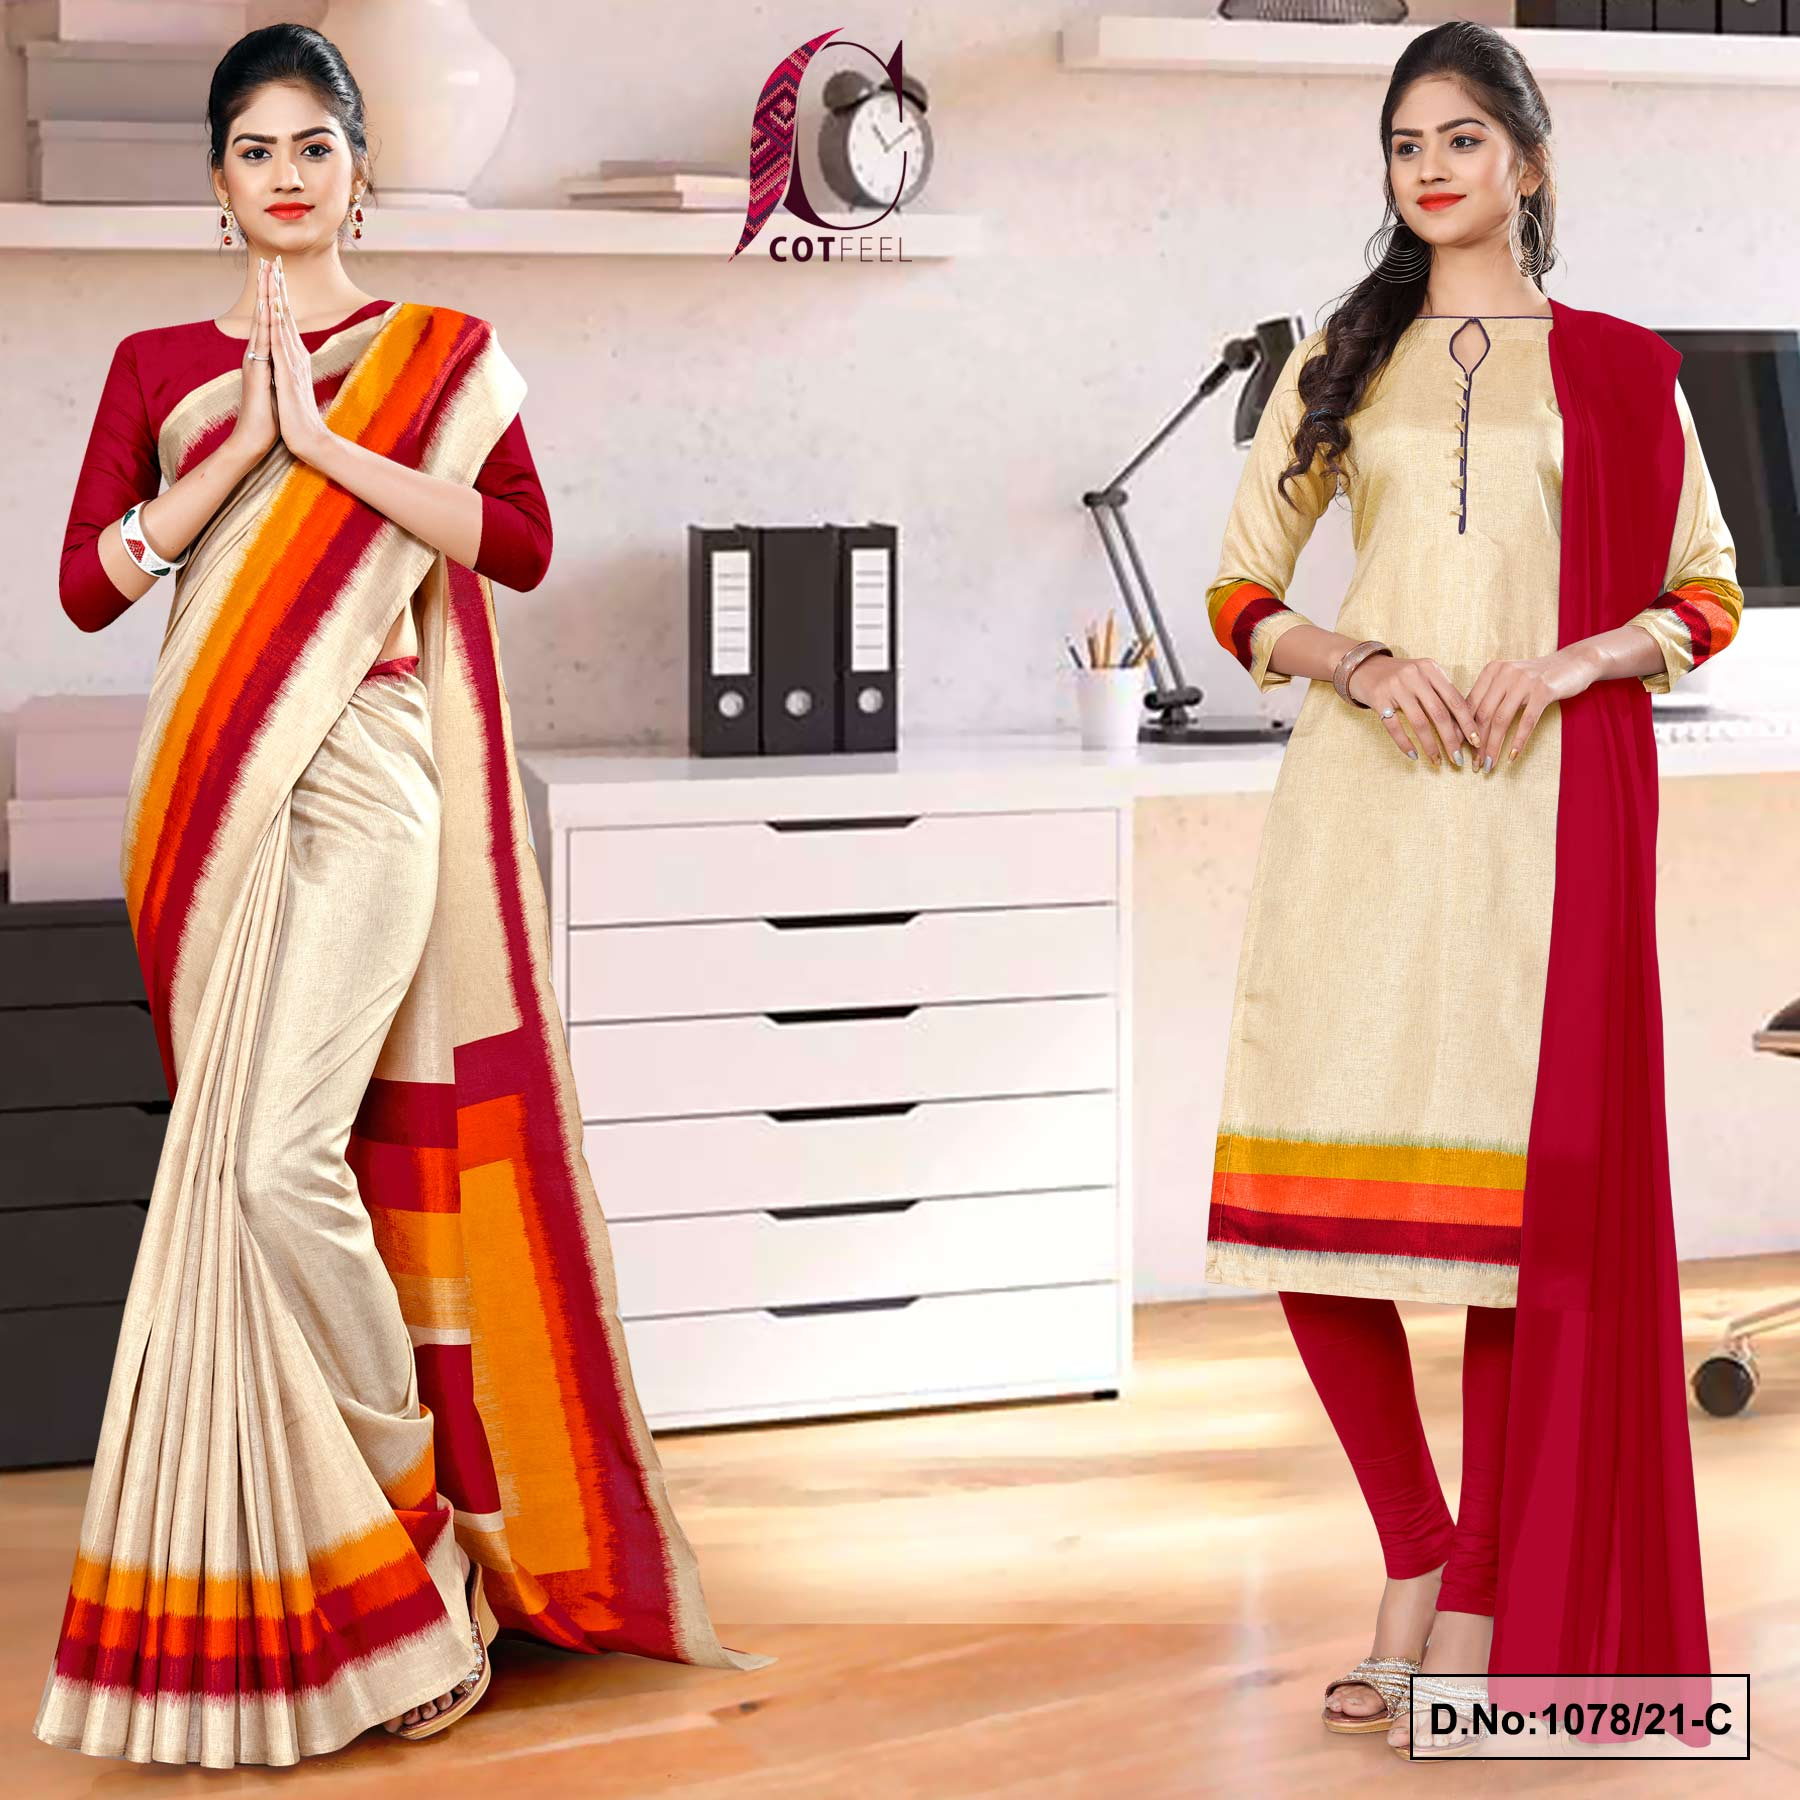 Beige Maroon Gala Border Premium Polycotton CotFeel Saree Salwar Combo for Employee Uniform Sarees 1078